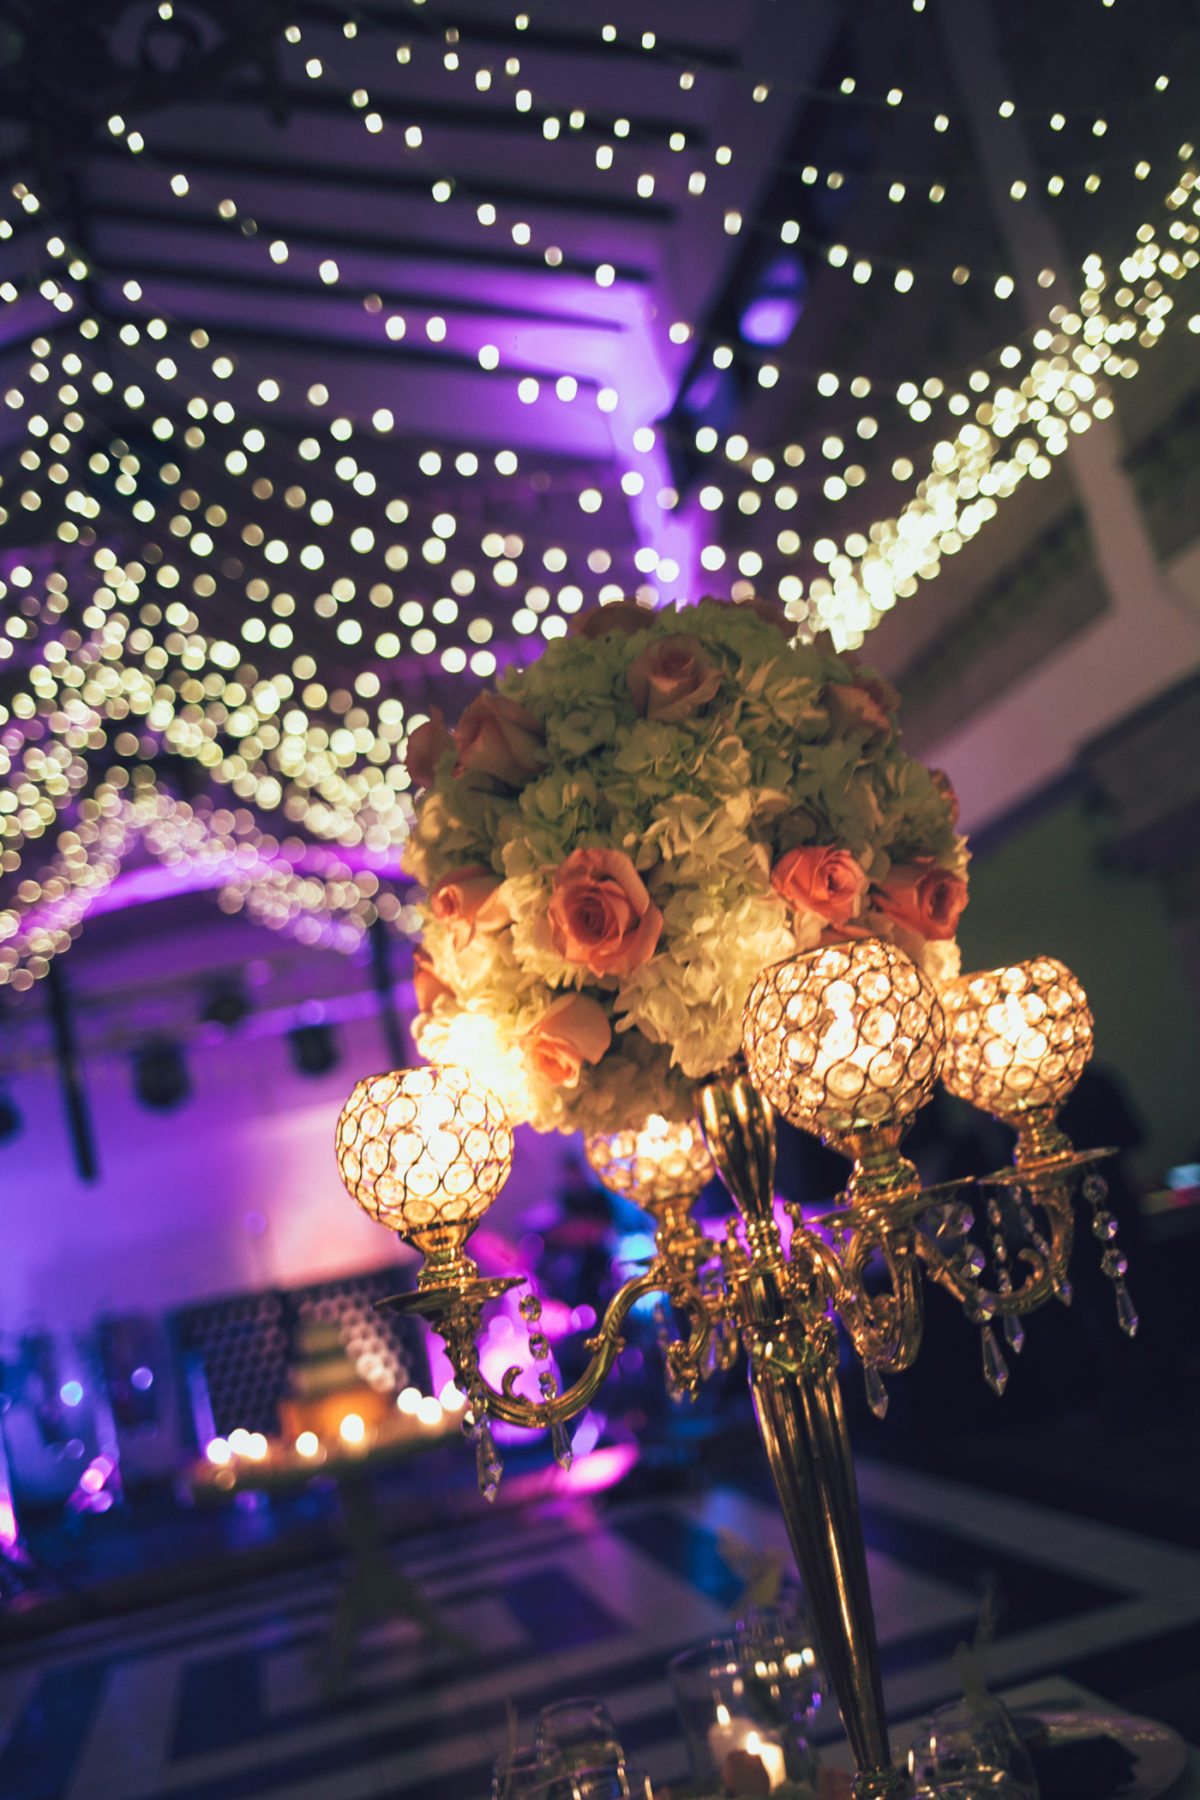 center piece, centro de mesa, candelabro dorado, wedding flowers, decoracion, boda luces en el techo